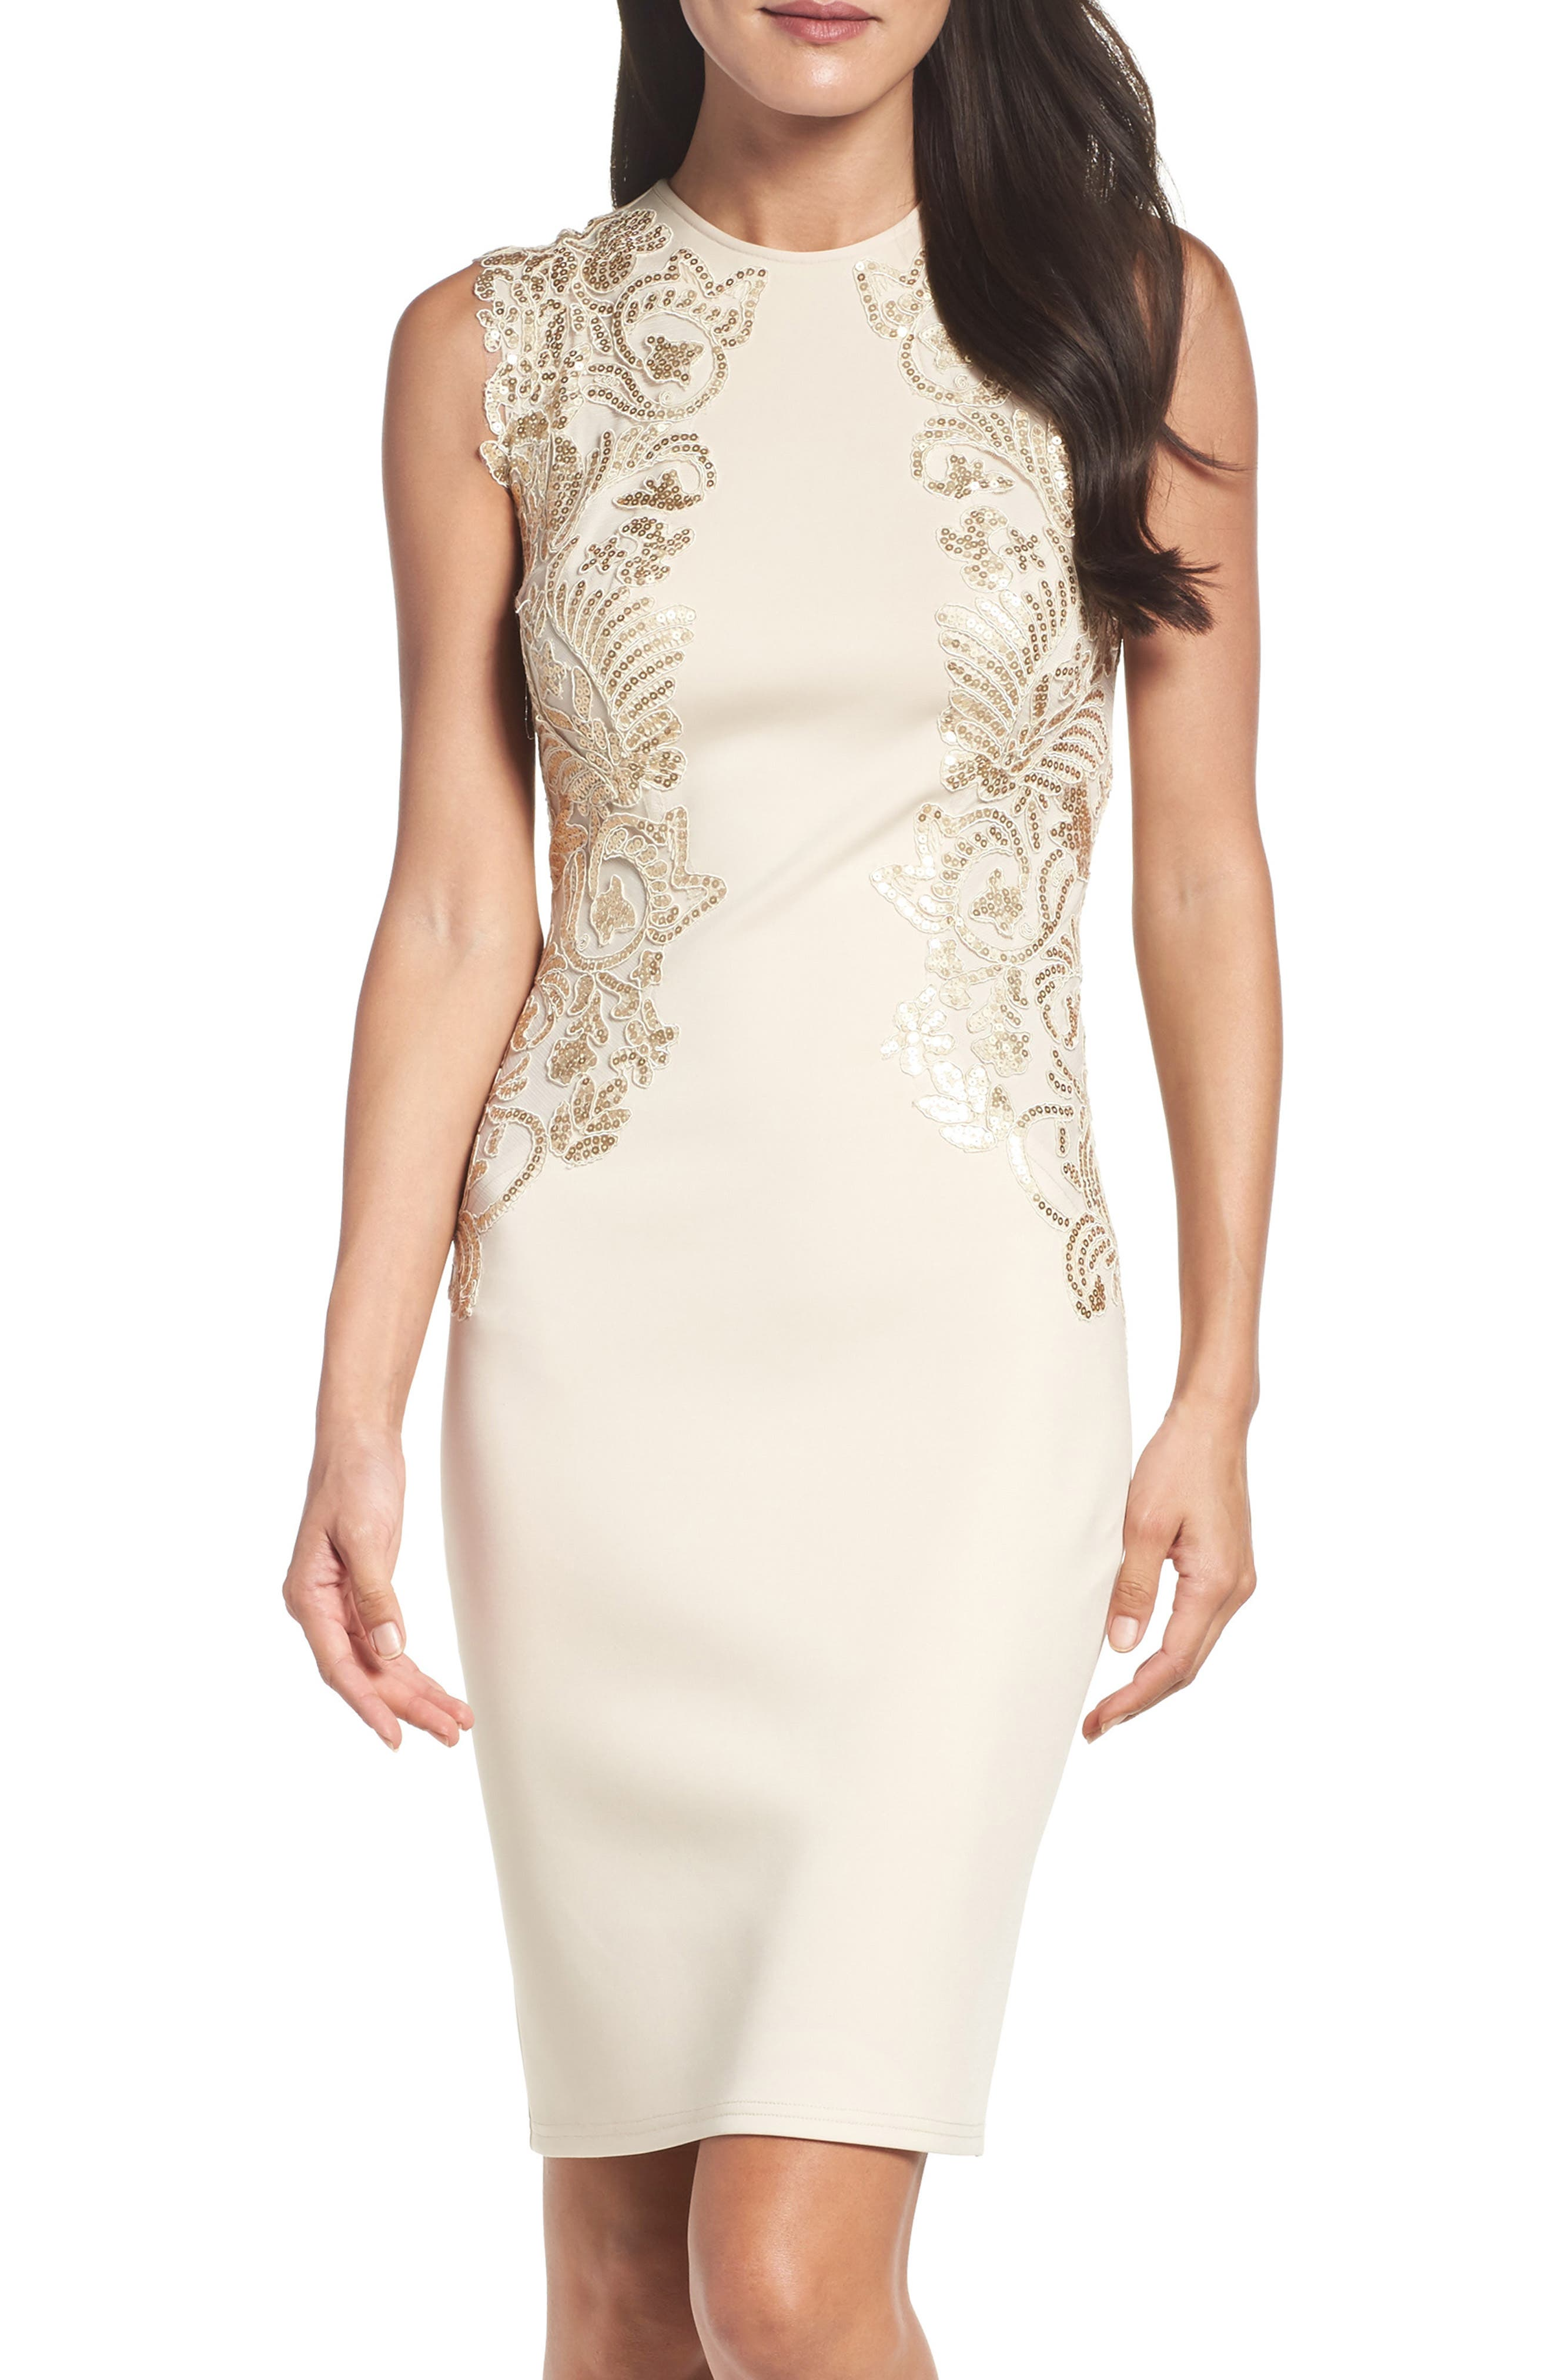 Main Image - Tadashi Shoji Sequin Appliqué Neoprene Sheath Dress